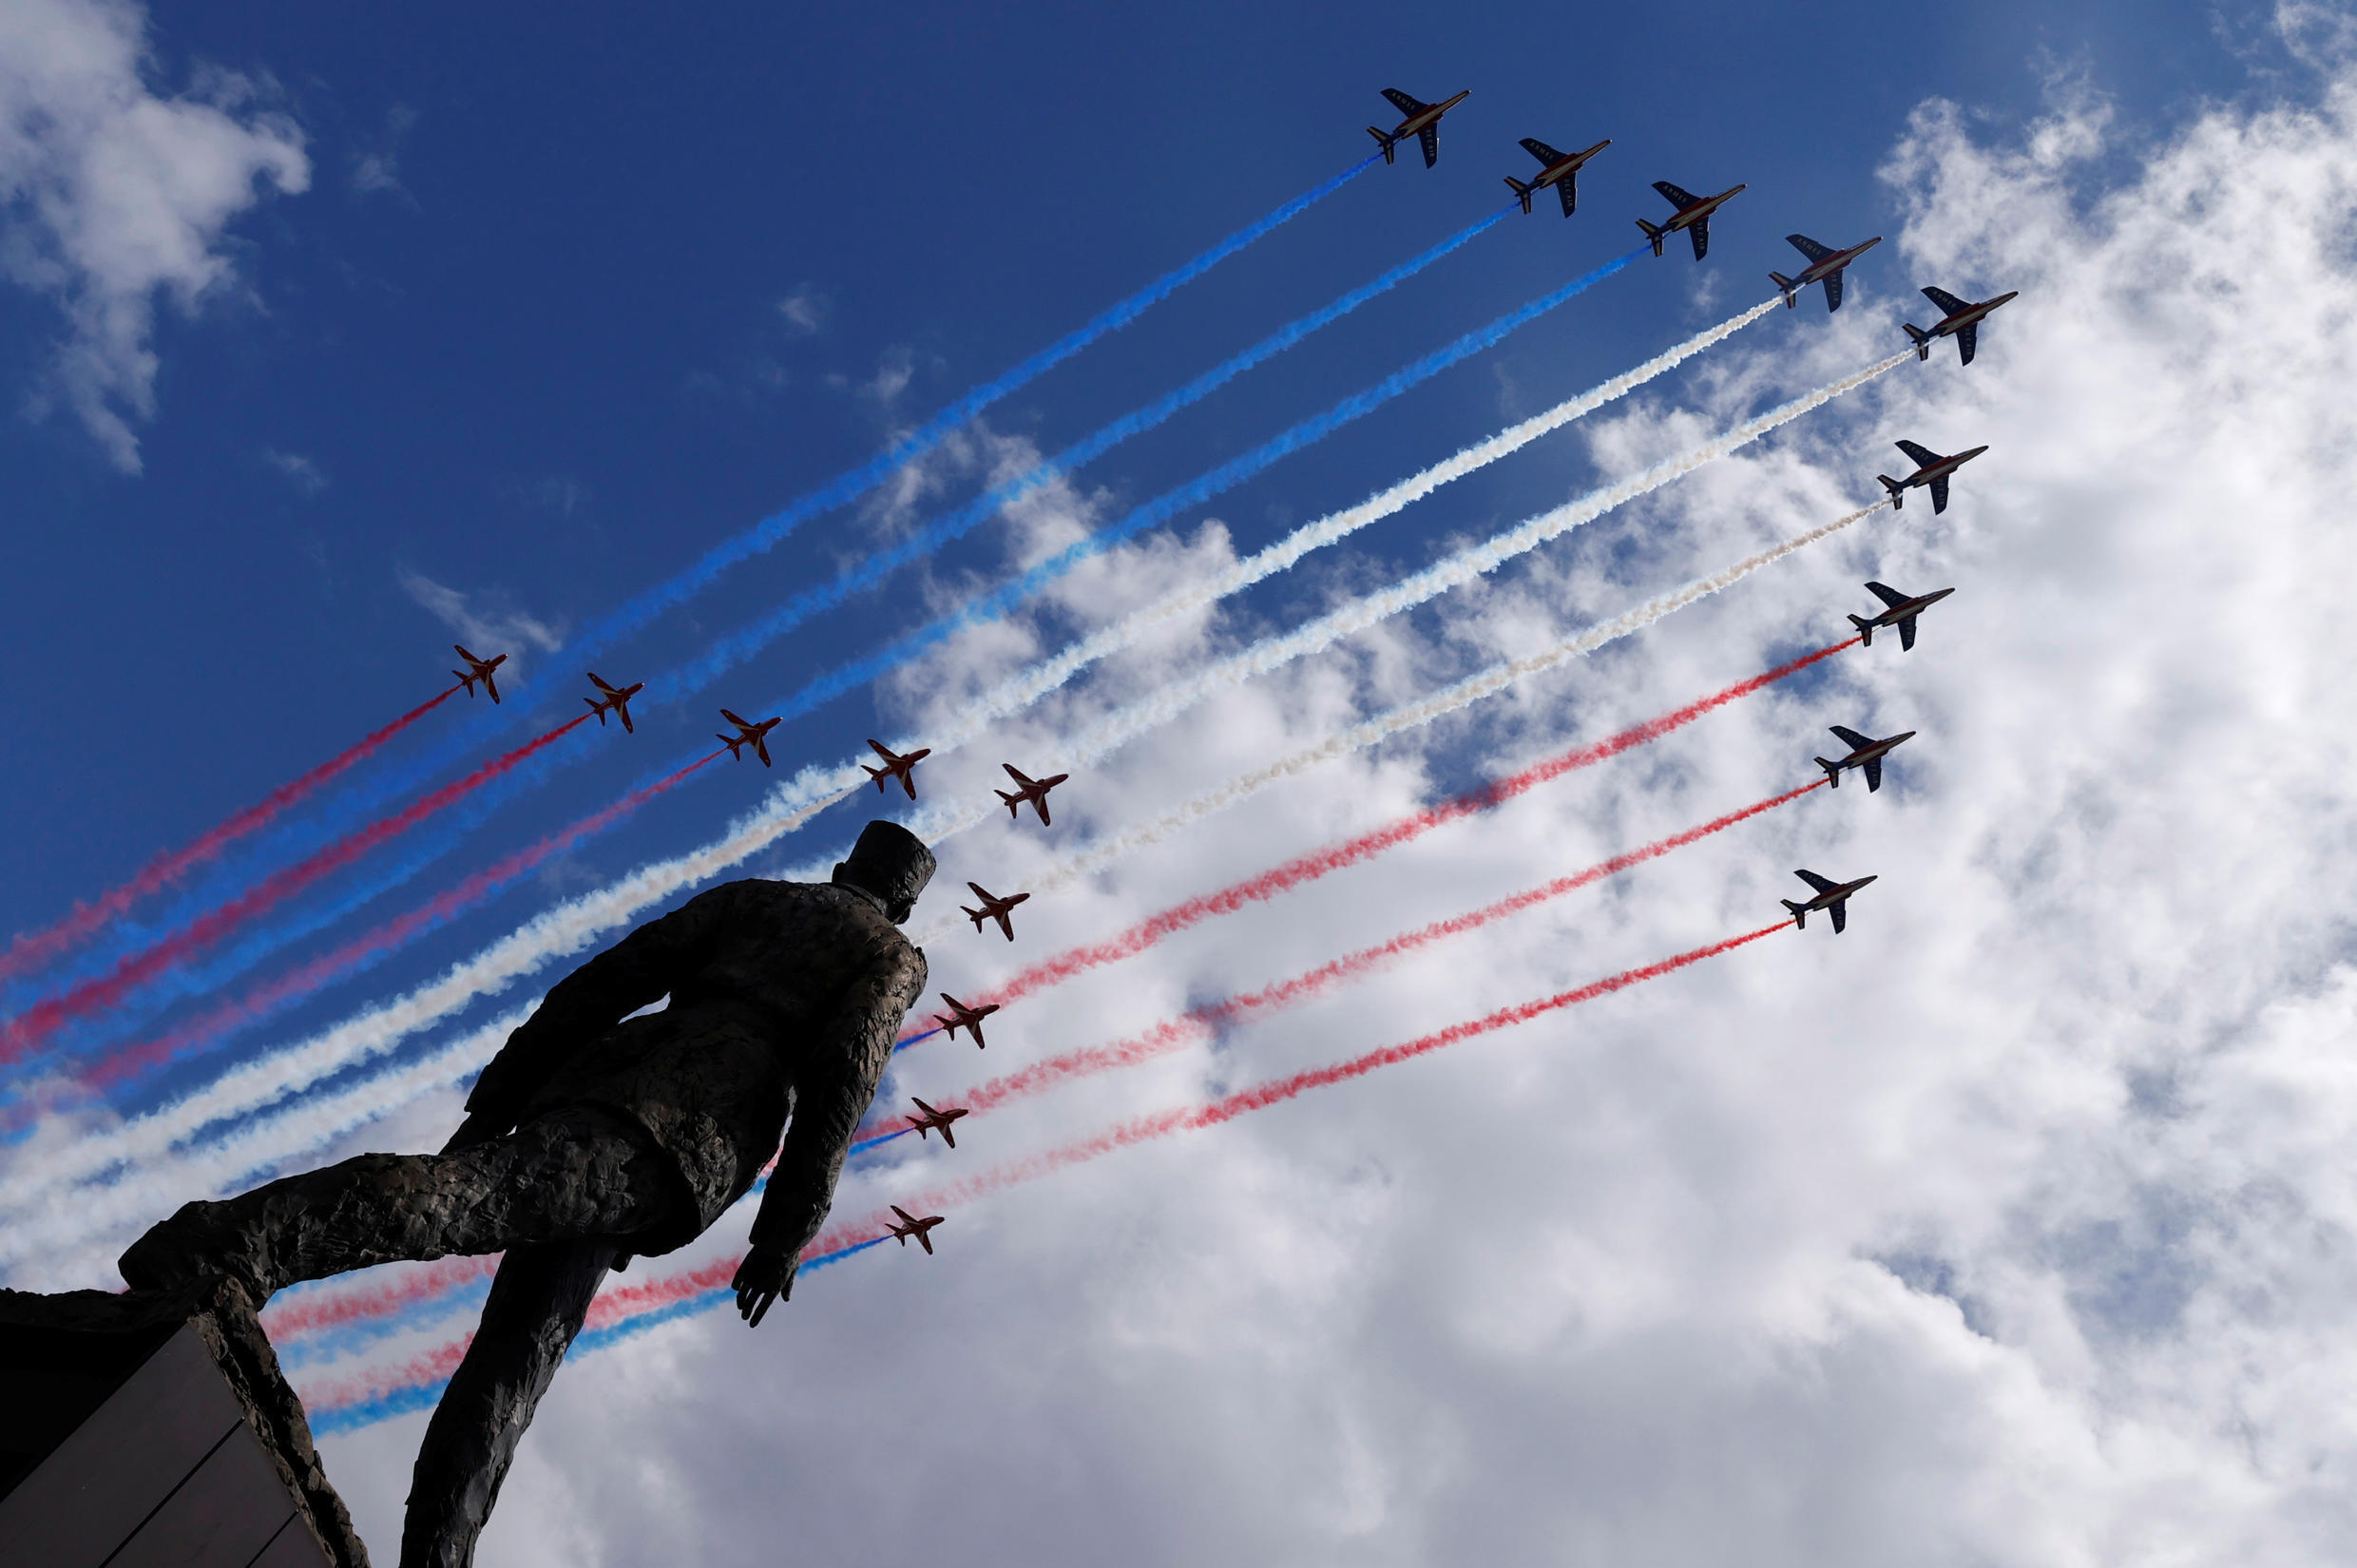 Alpha jets from the French Air Force Patrouille de France and the Royal Air Force Red Arrows fly over the statue of Charles de Gaulle on the Champs Elysees avenue to celebrate the 80th anniversary of the wartime leader's appeal to the French to resist the Nazi occupation, June 18, 2020.